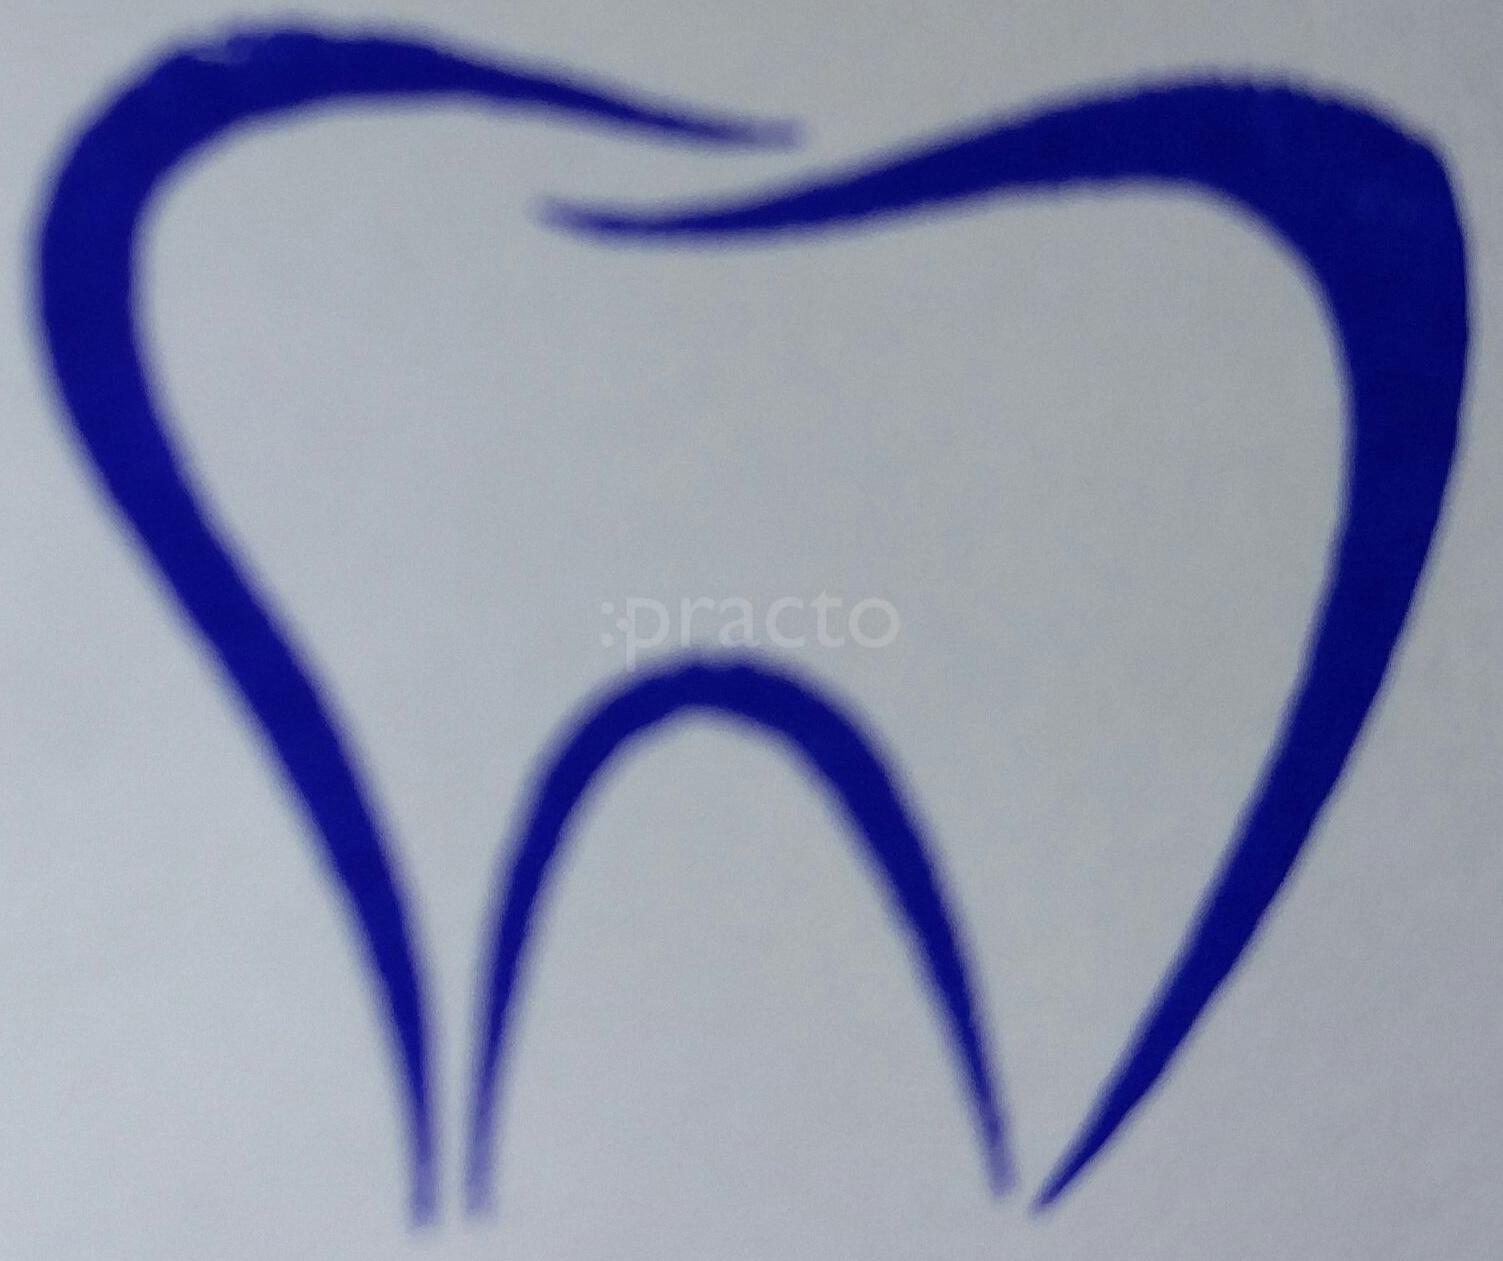 Dr. Tooth Superspeciality Dental & Implant Care